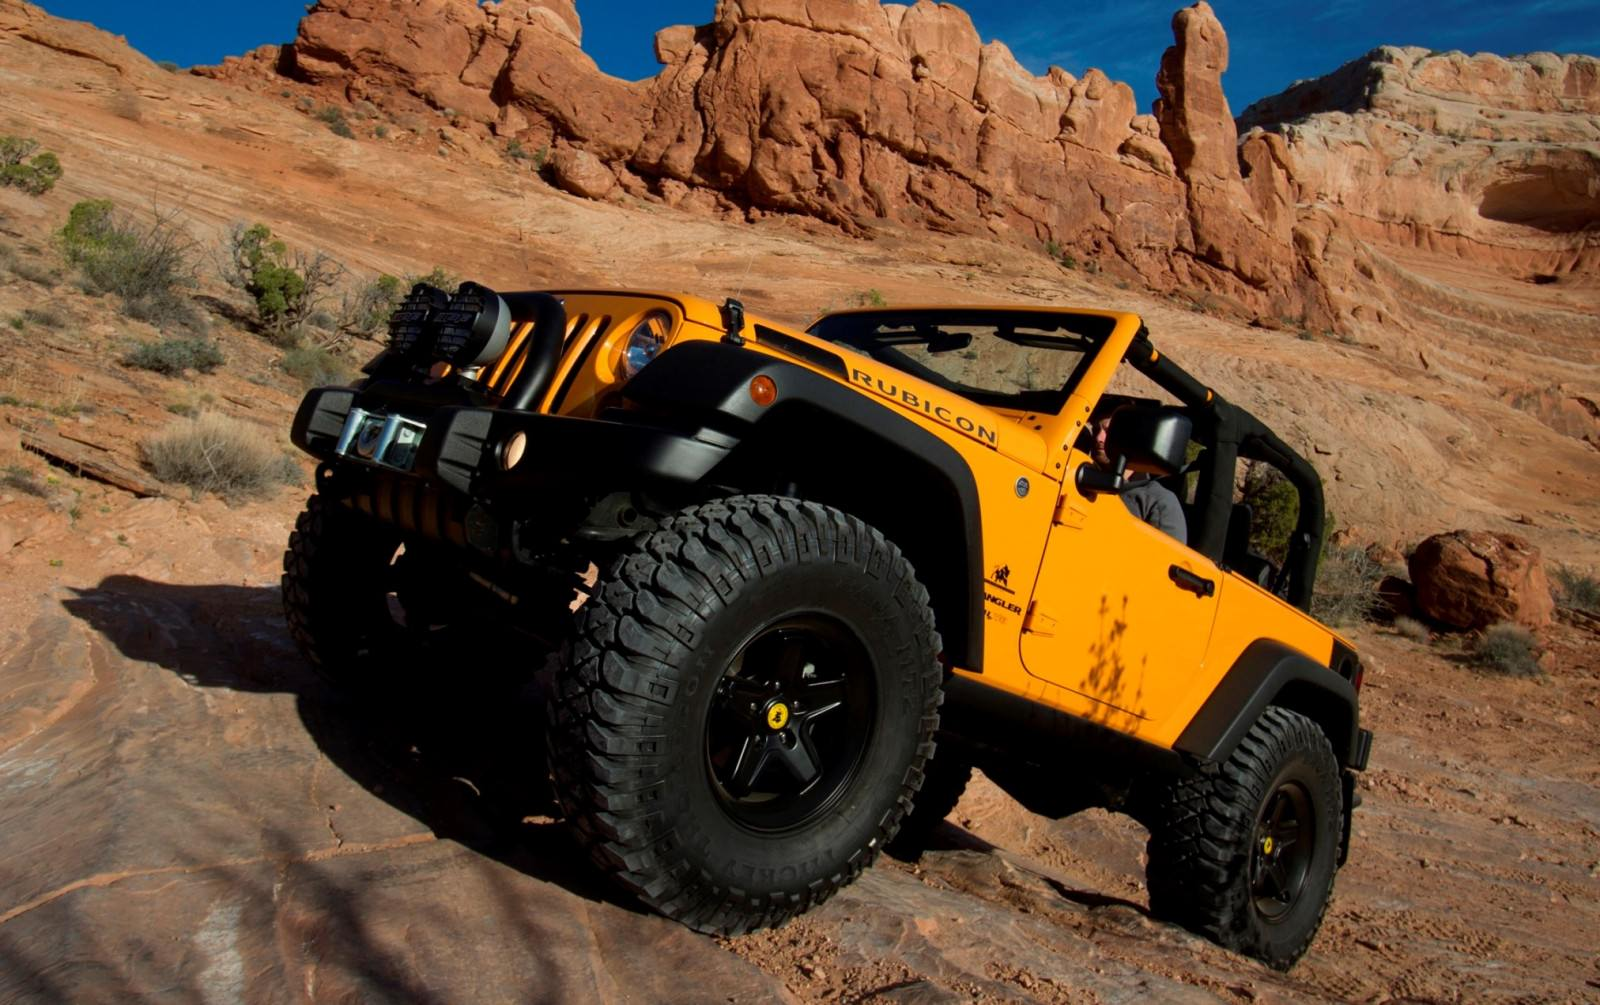 JEEP Heritage and Icons - Mega Gallery in 113 Rare Photos 105